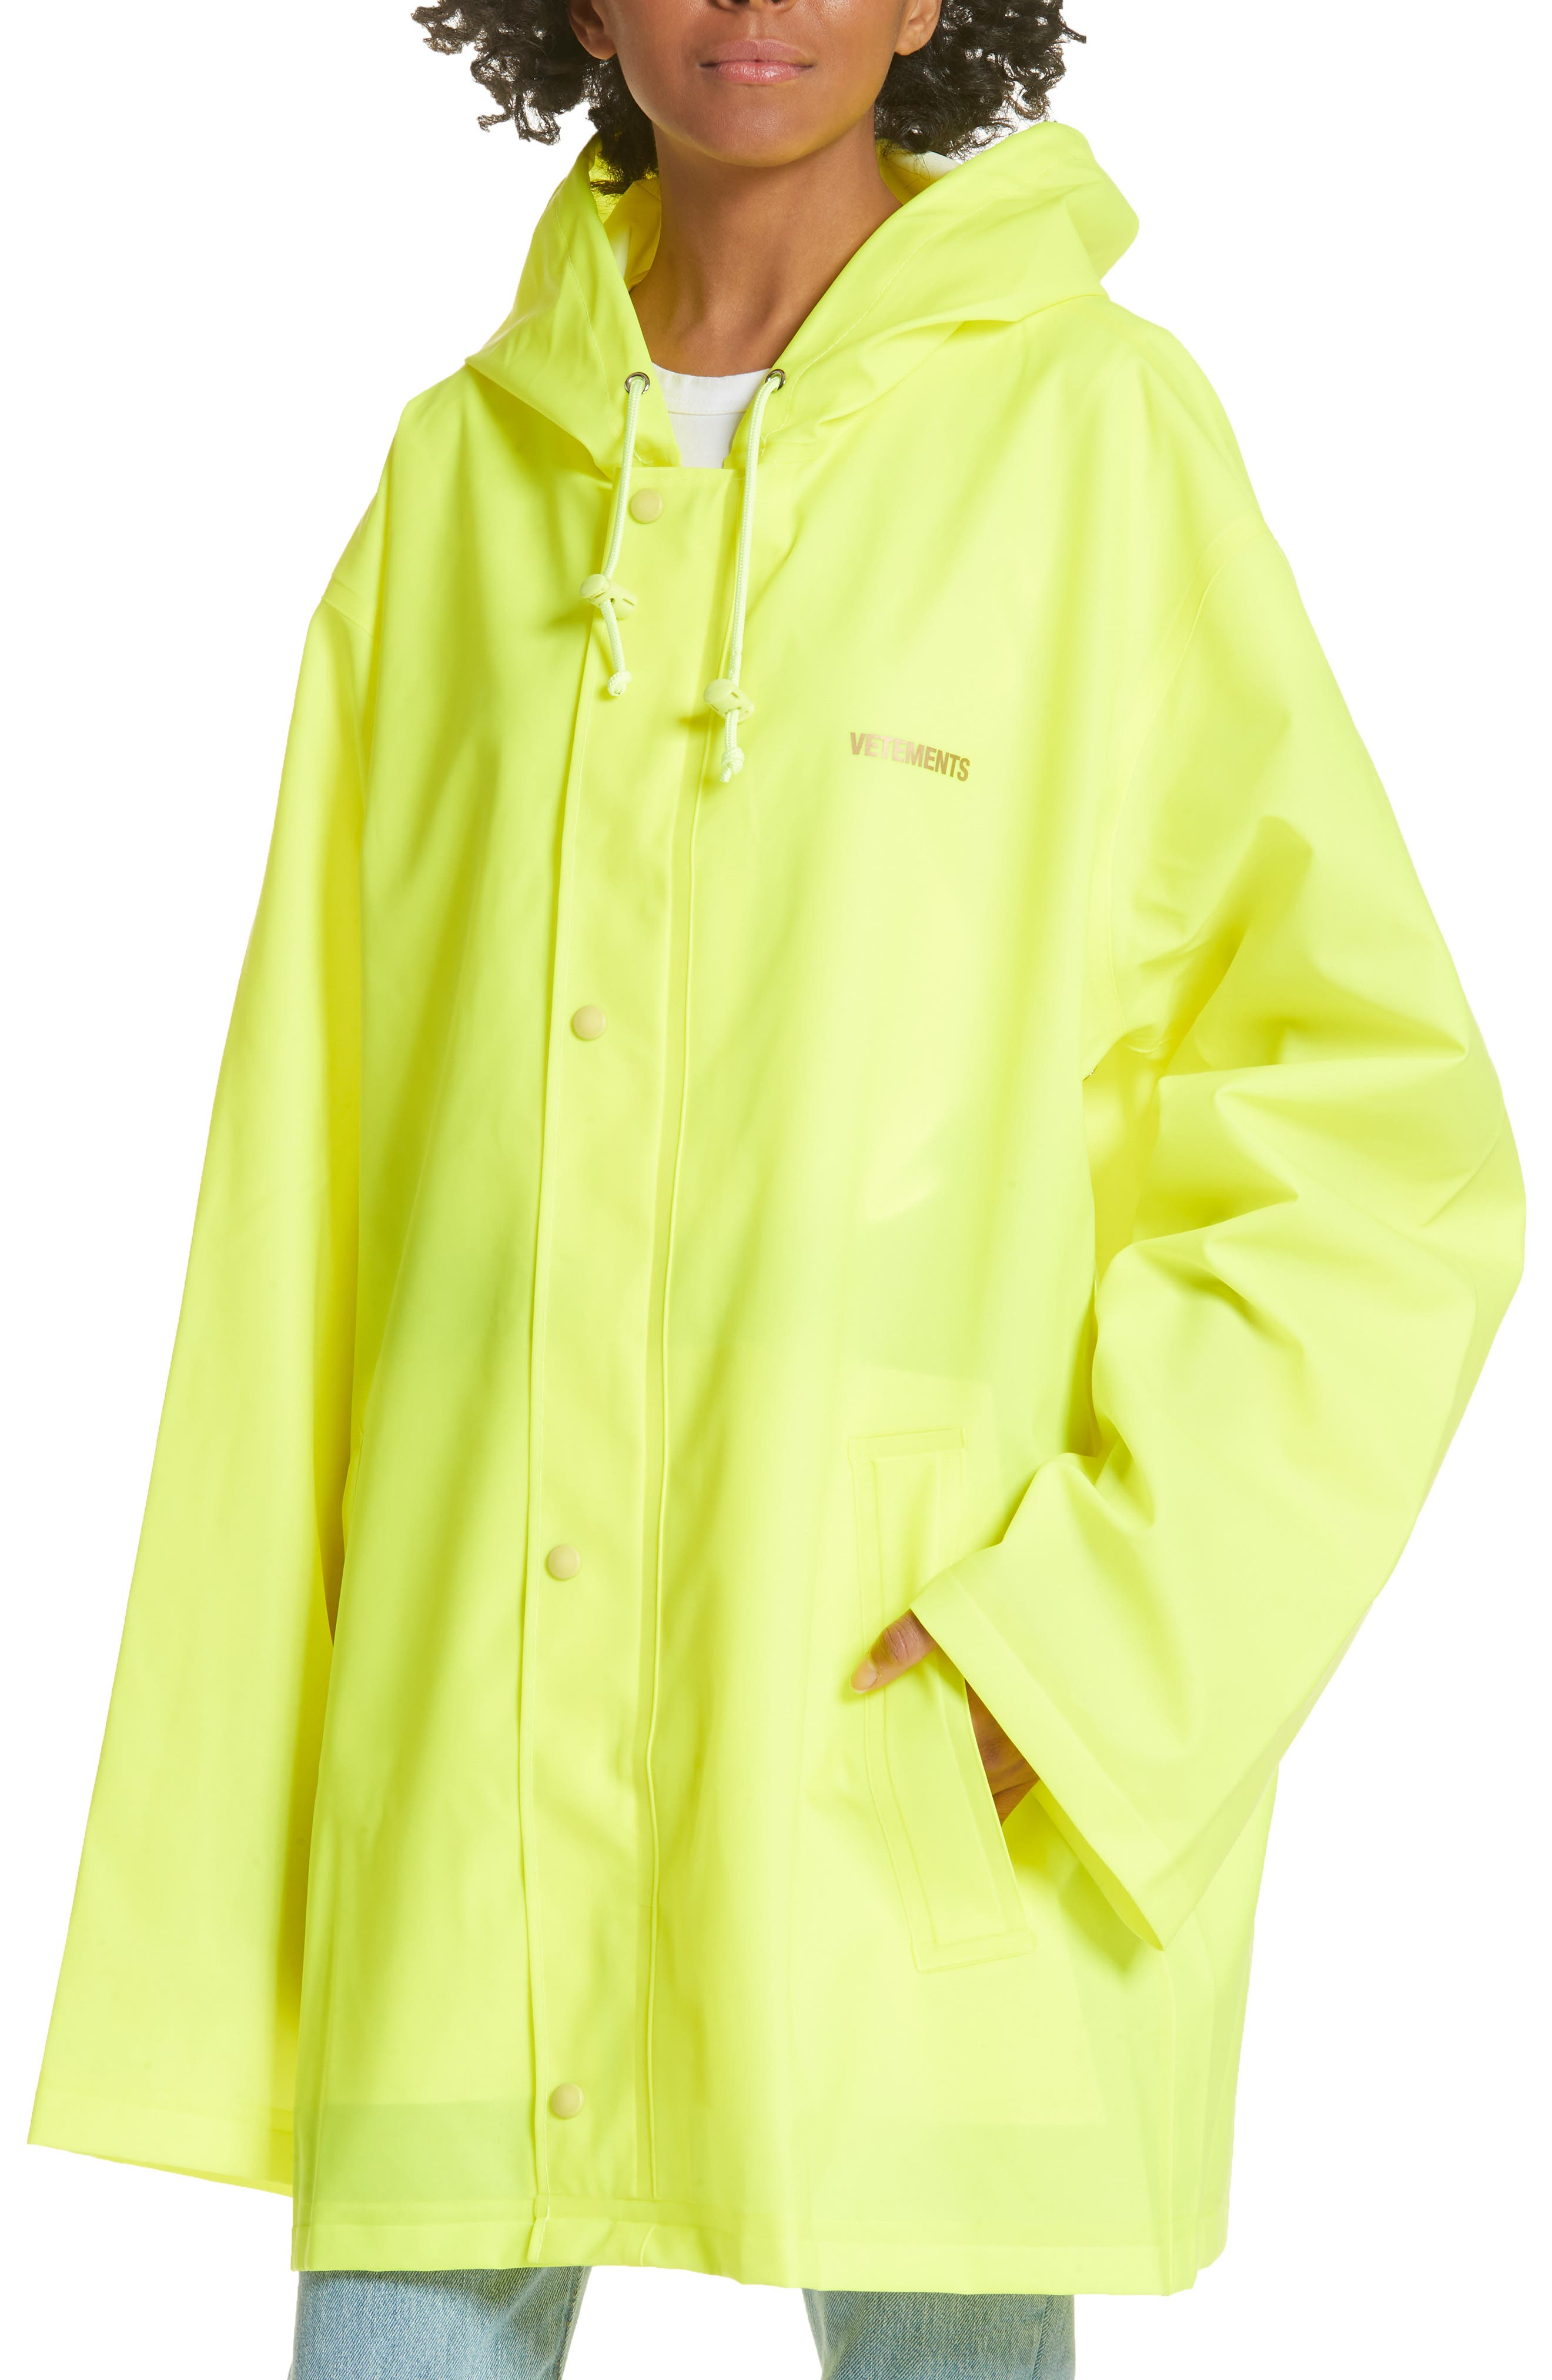 Alternate Image 4  - Vetements Short Logo Raincoat